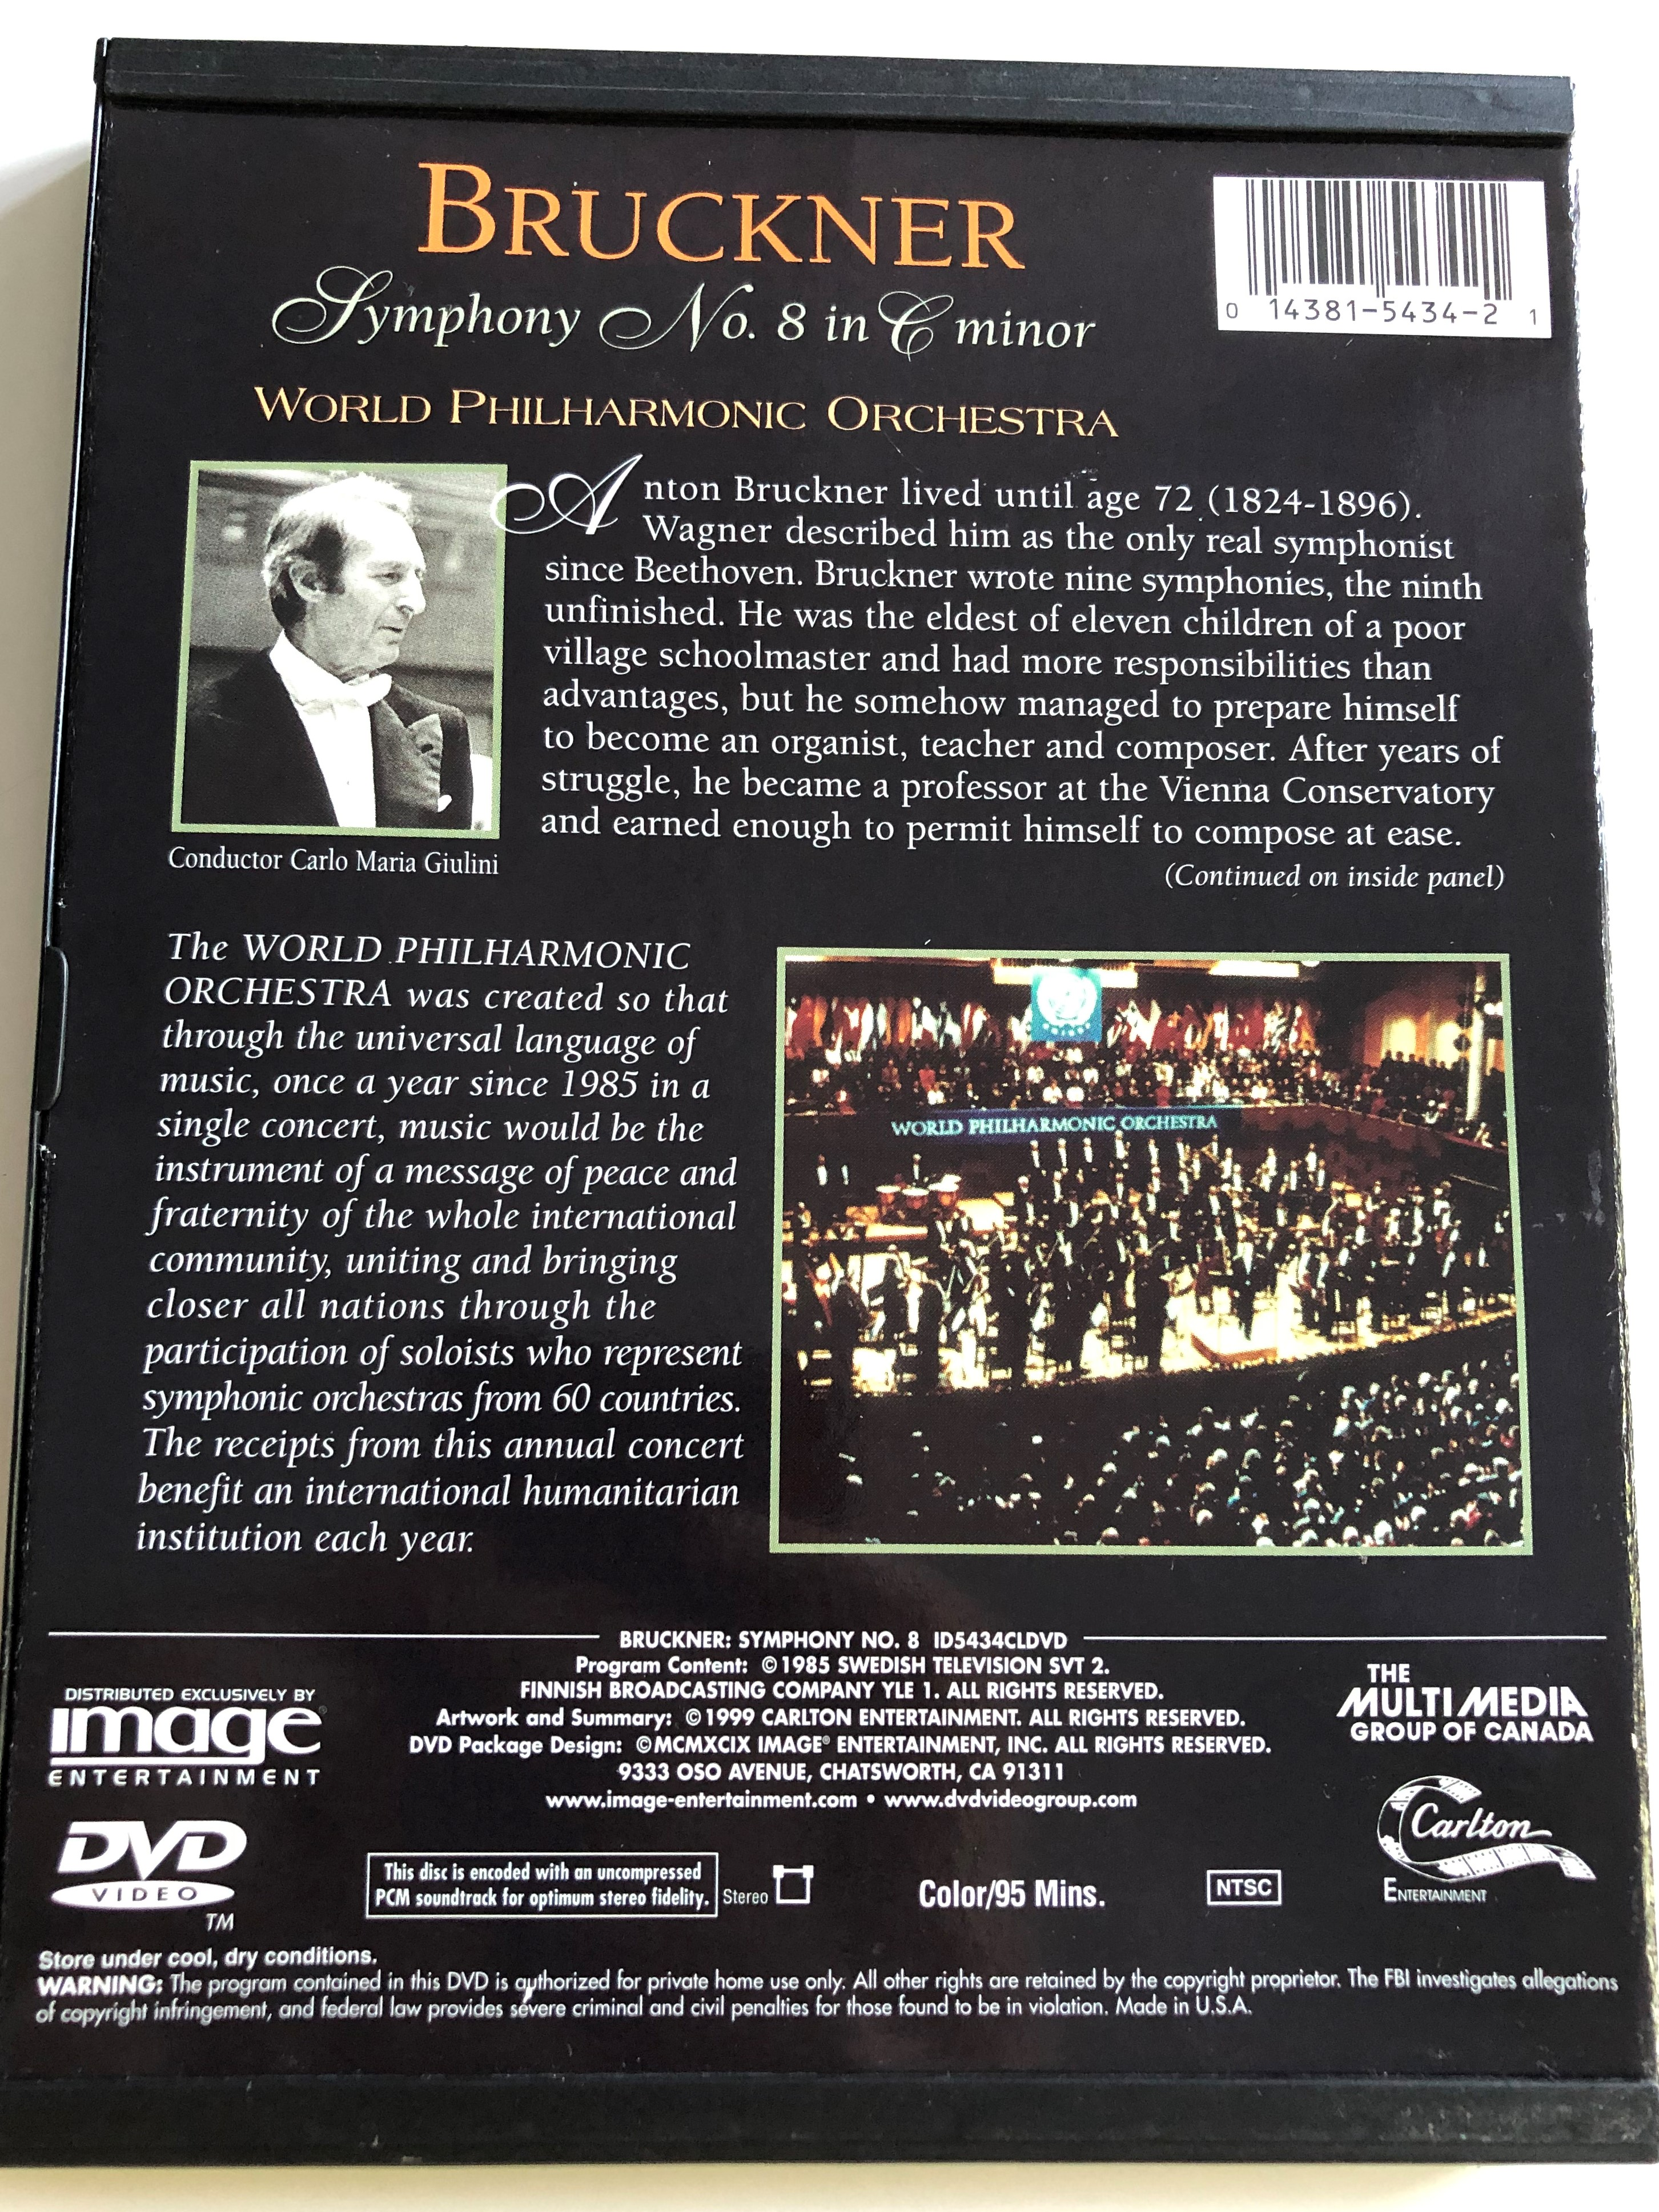 bruckner-symphony-no.-8-dvd-1985-world-philharmonic-orchestra-conductor-carlo-maria-giulini-5-.jpg